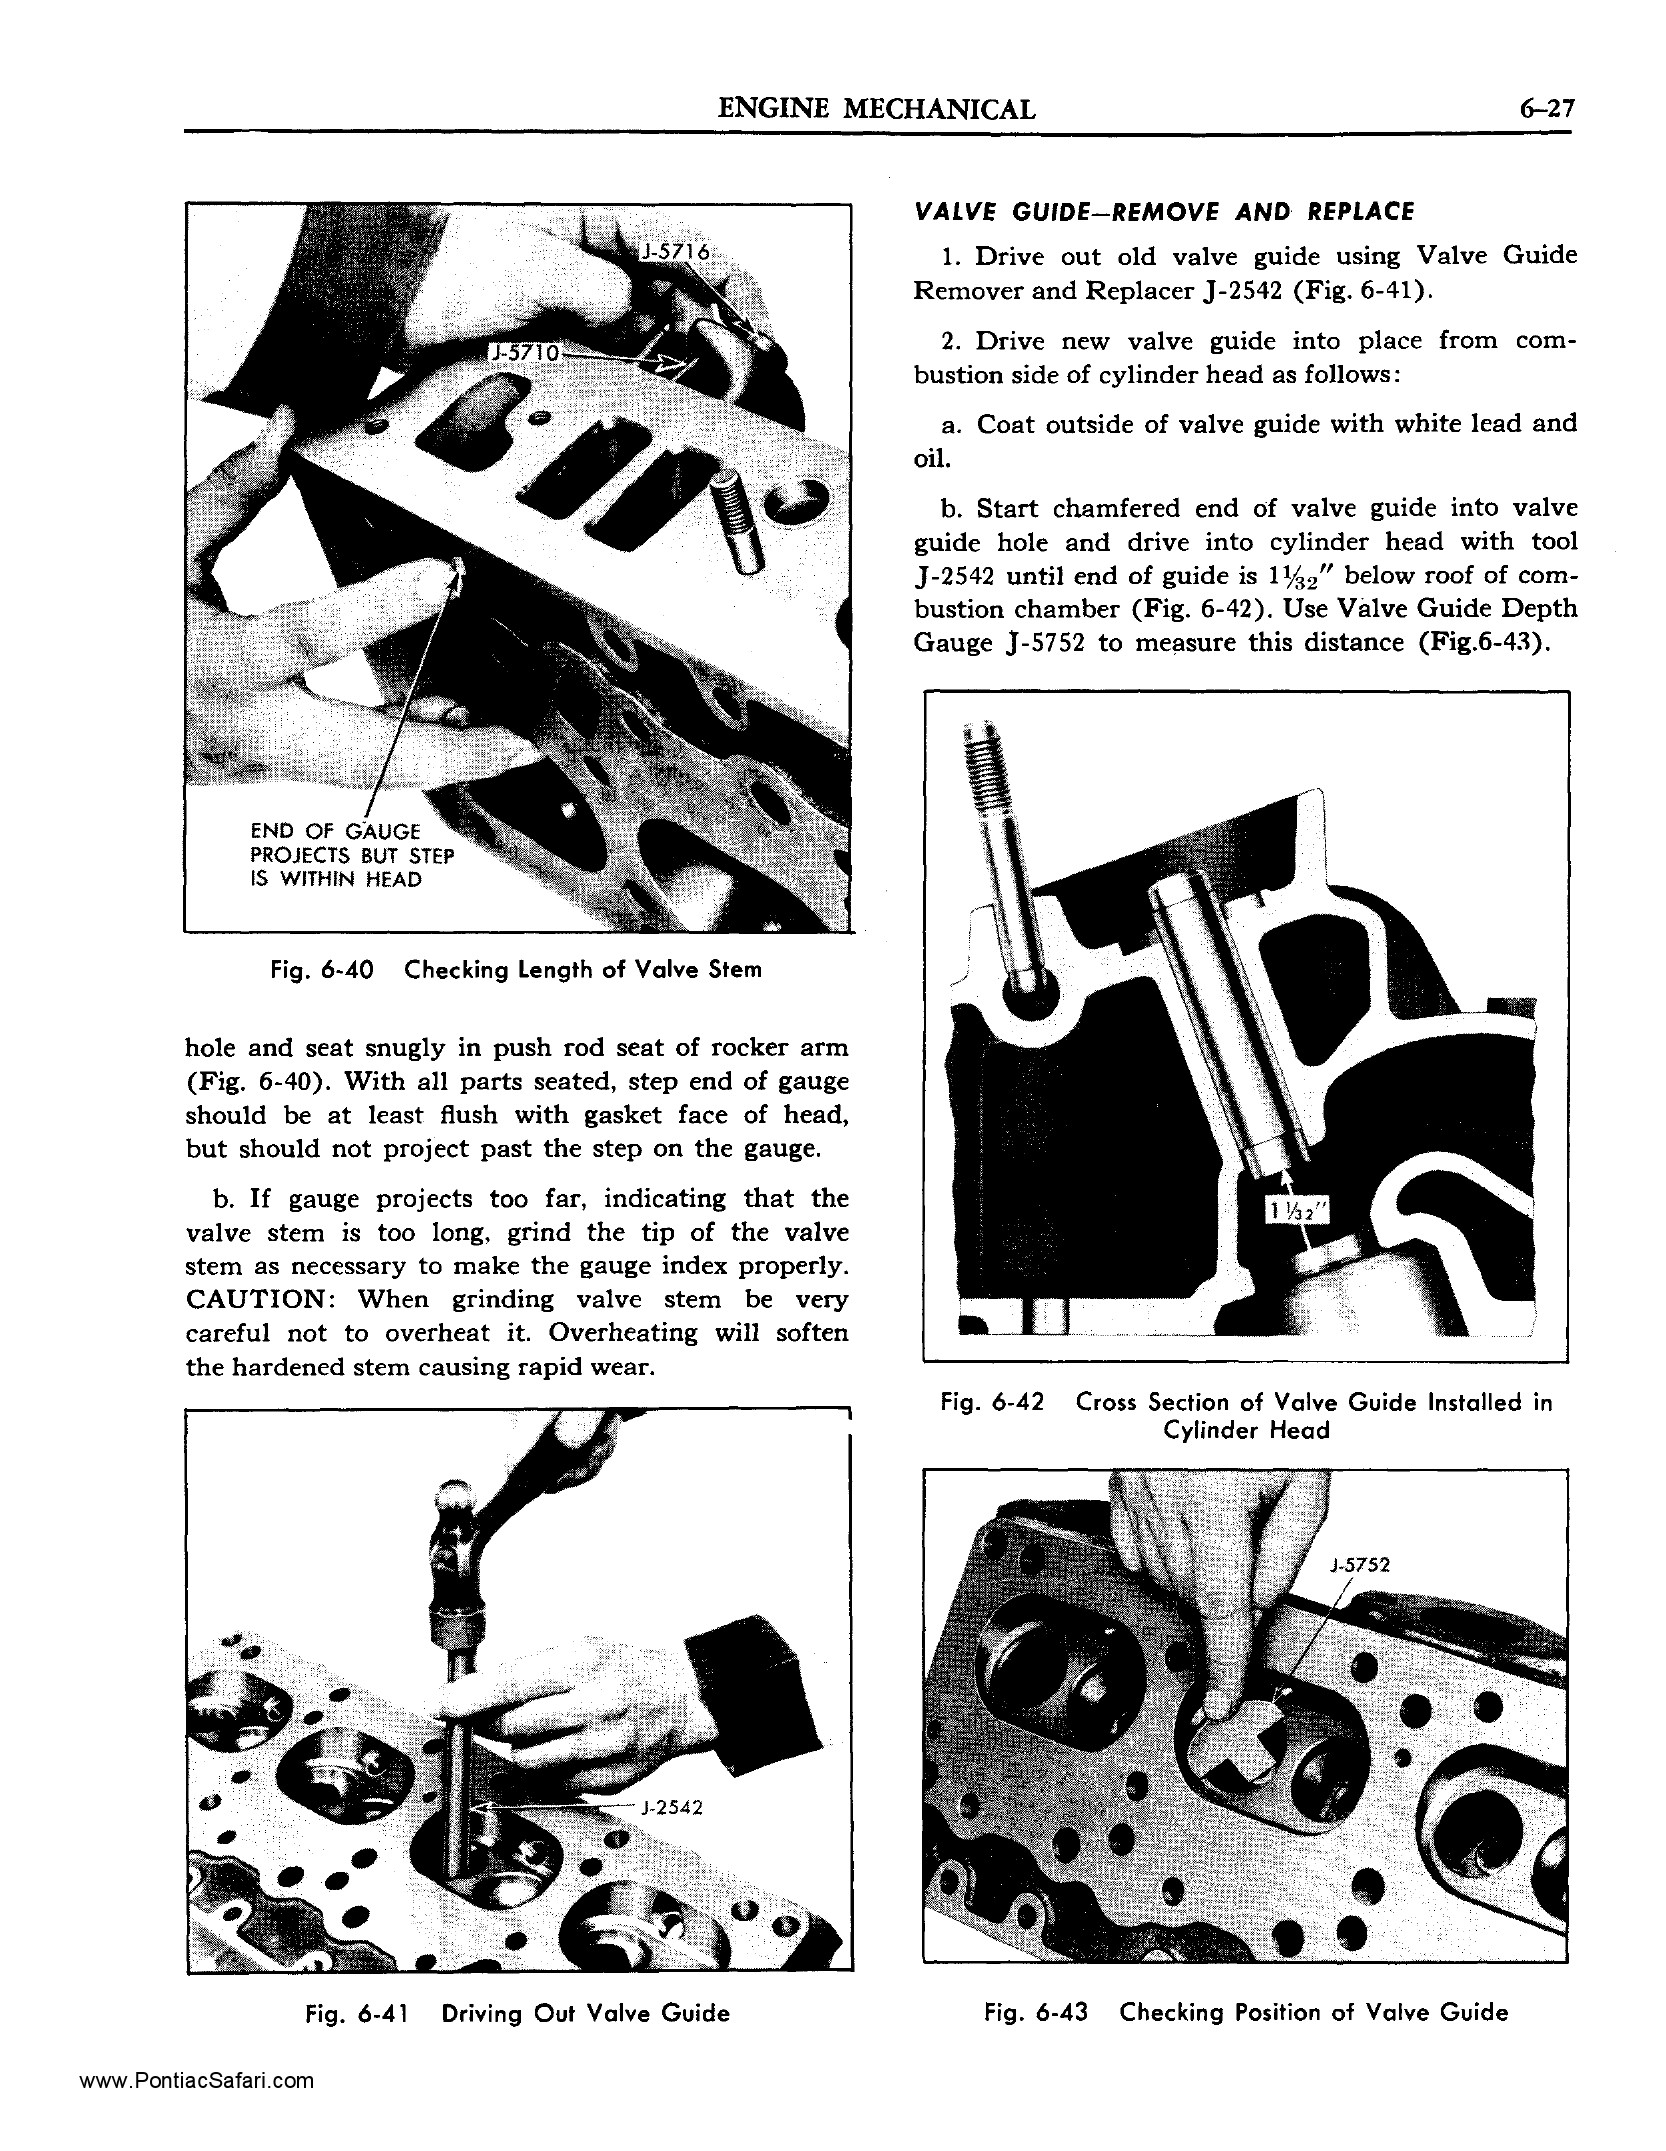 1955 Pontiac Shop Manual- Engine Mechanical Page 28 of 53